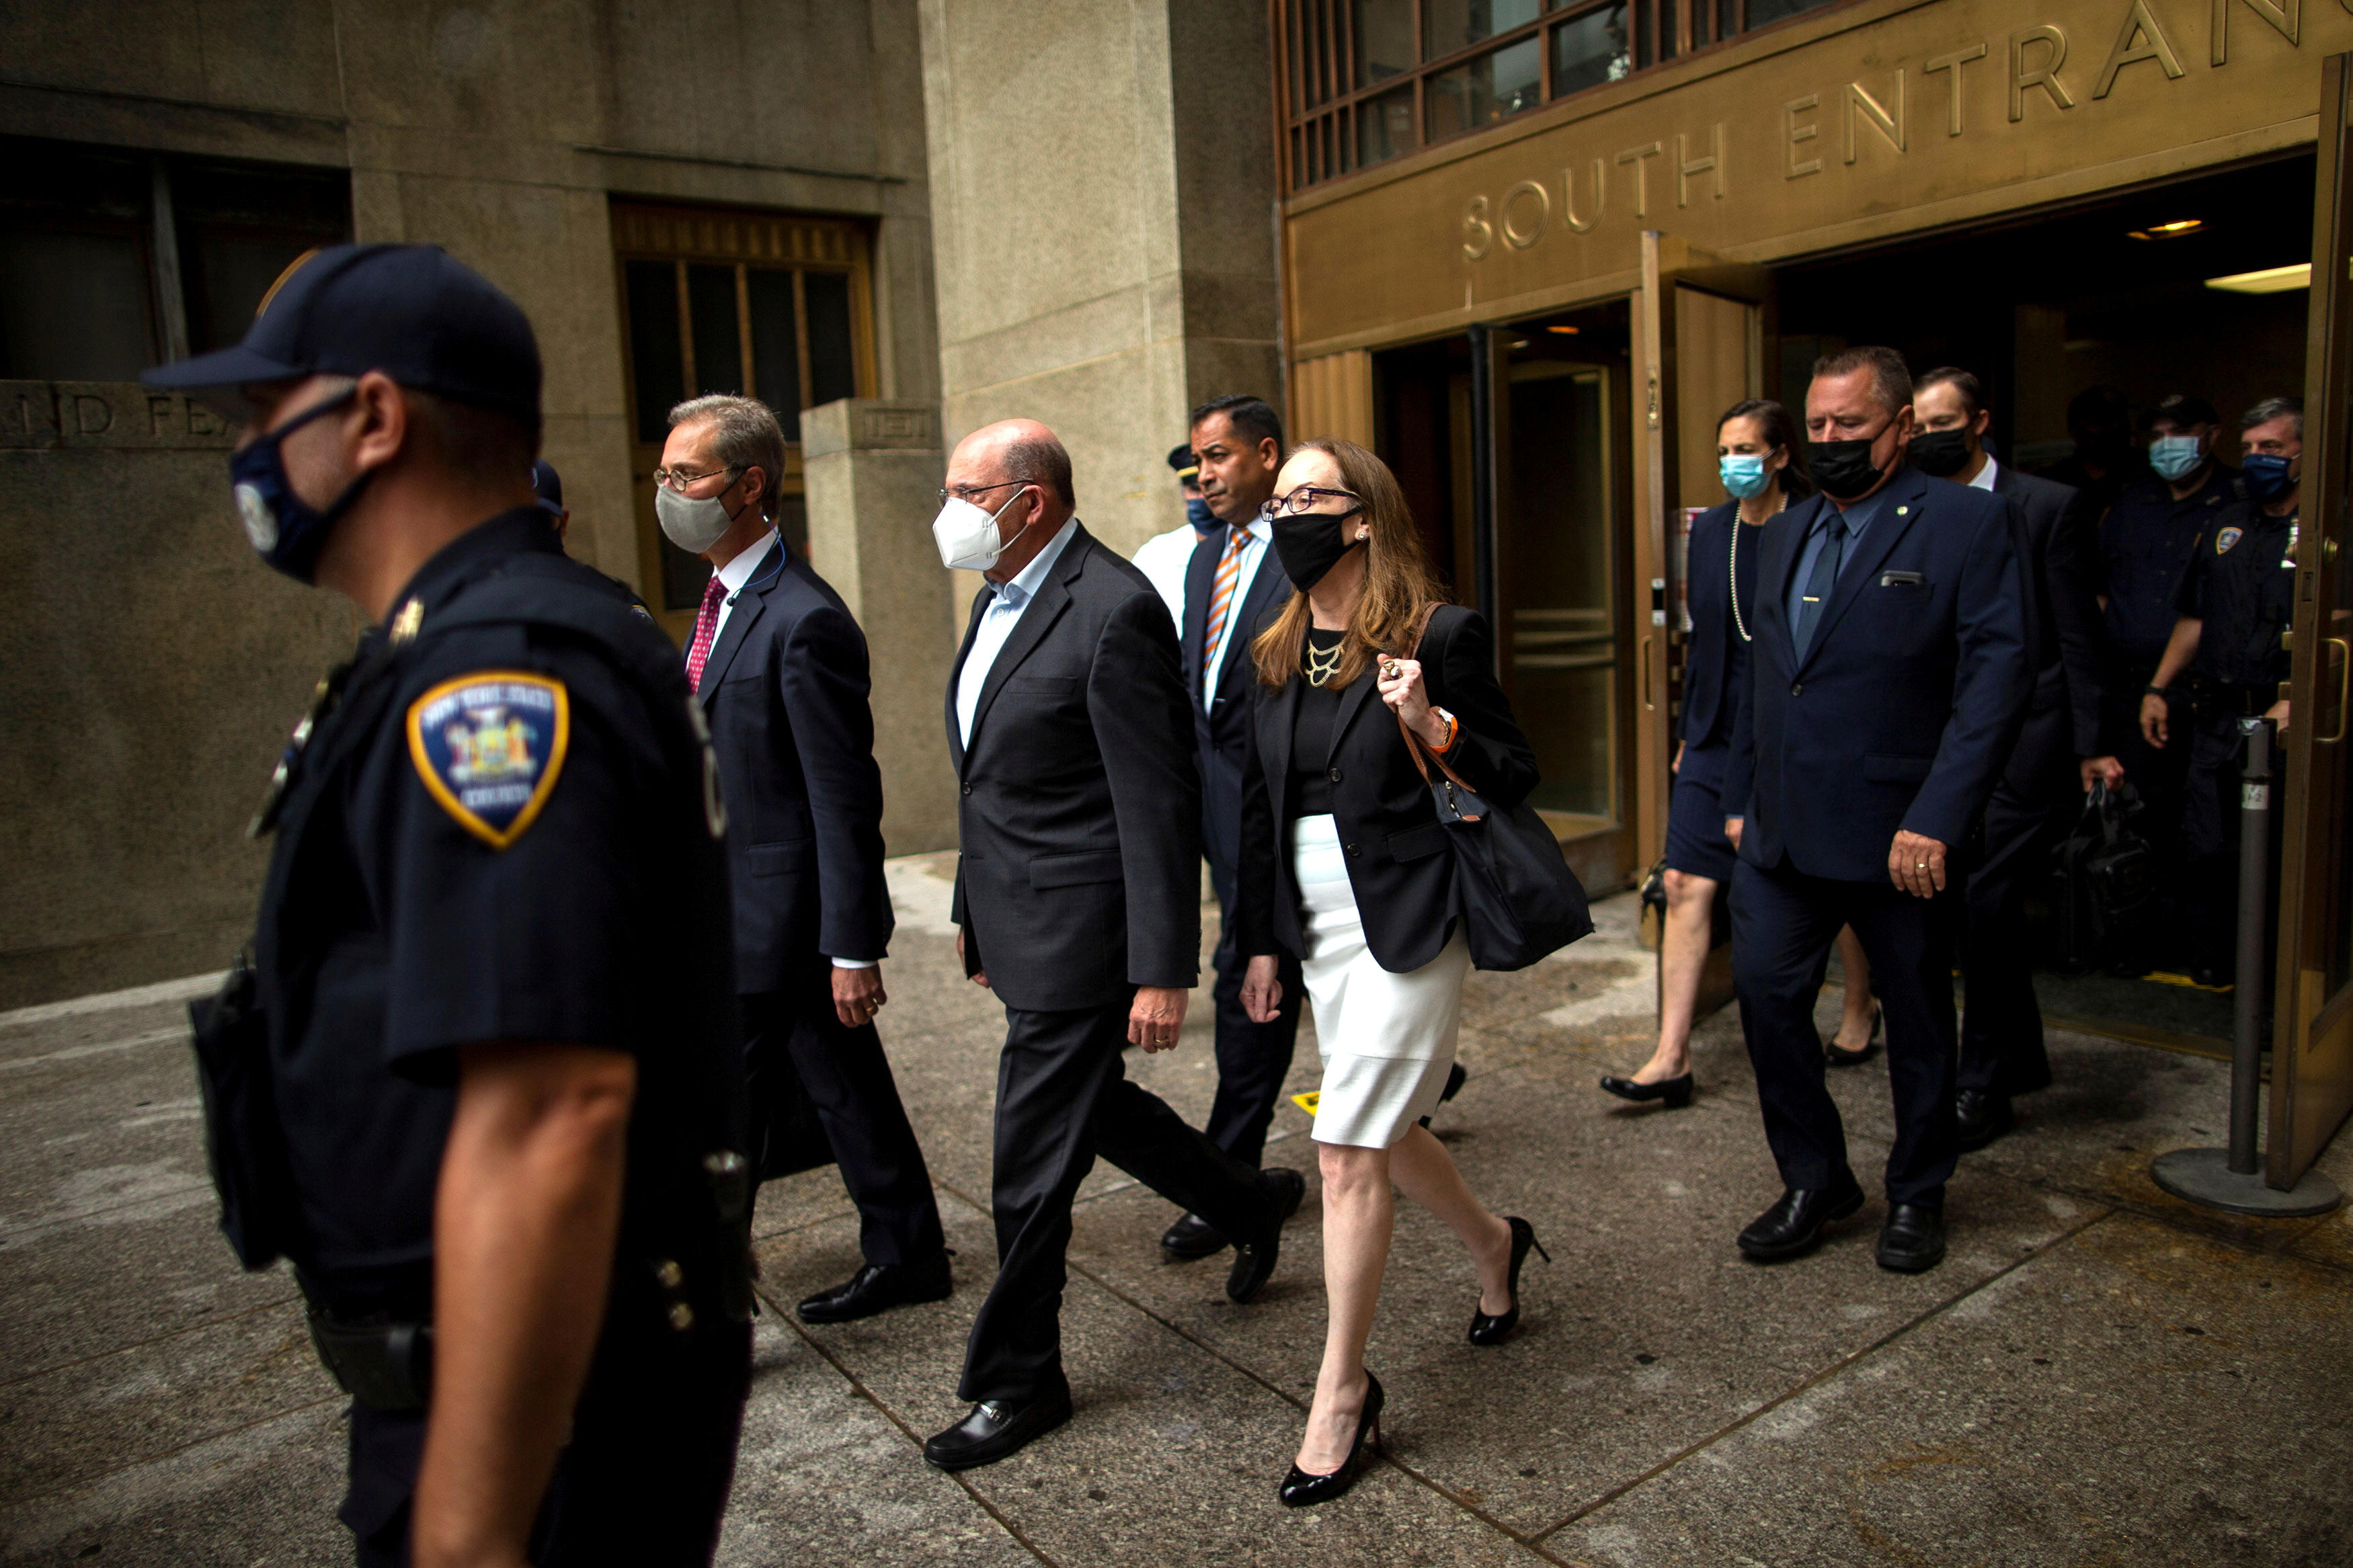 Trump Organization chief financial officer Allen Weisselberg (3rd-L) exits following his arraignment hearing in New York State Supreme Court in the Manhattan borough of New York City, New York, U.S., July 1, 2021.  REUTERS/Eduardo Munoz